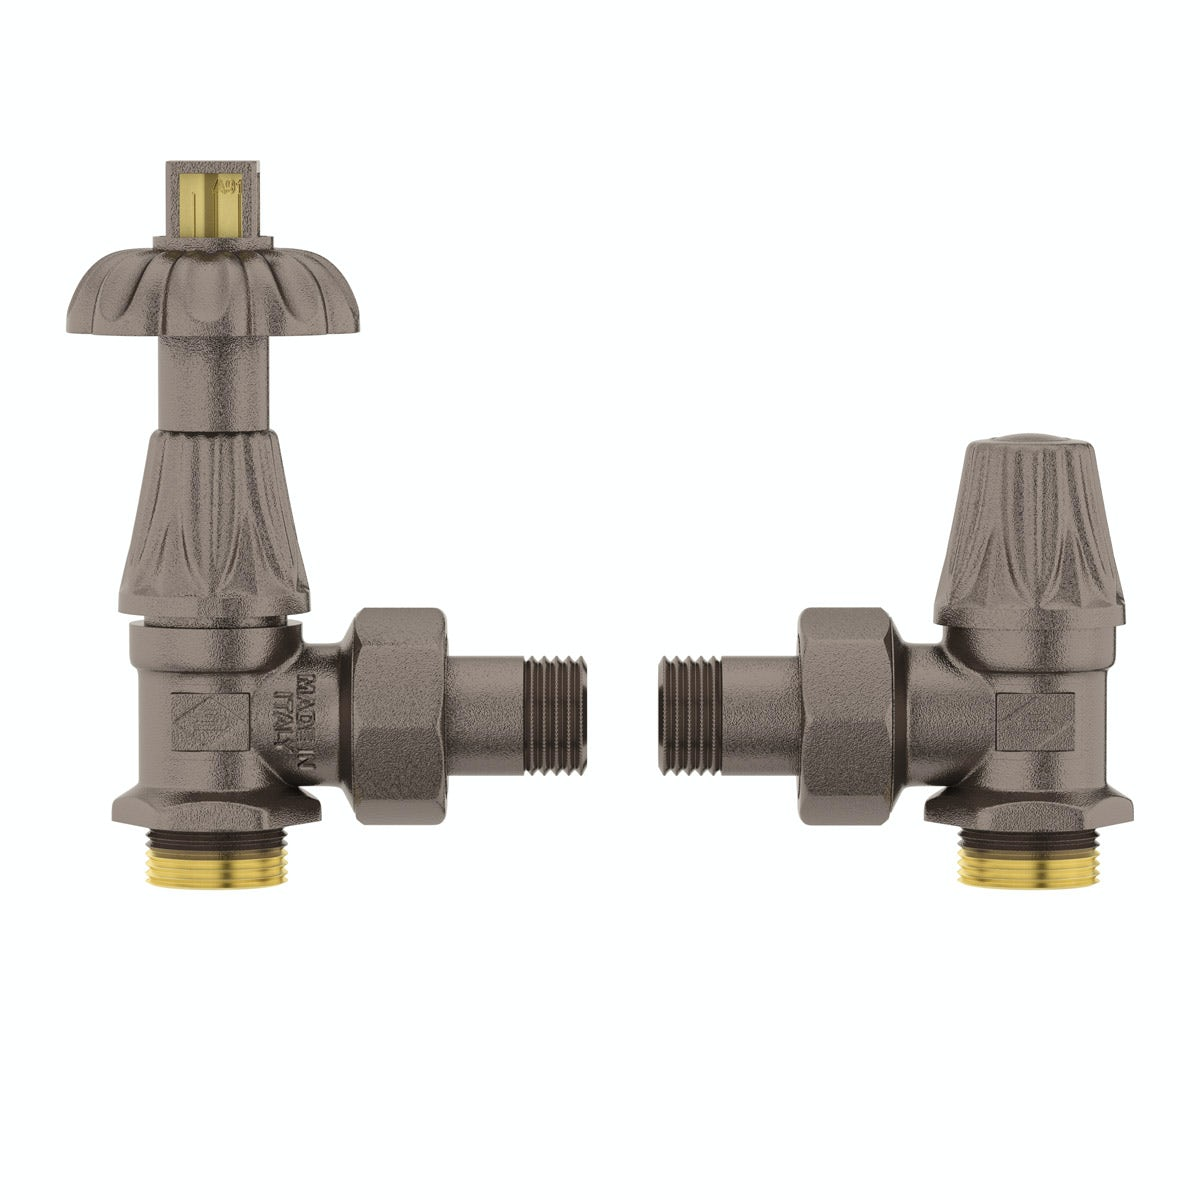 Terma Oxford russet thermostatic radiator valves